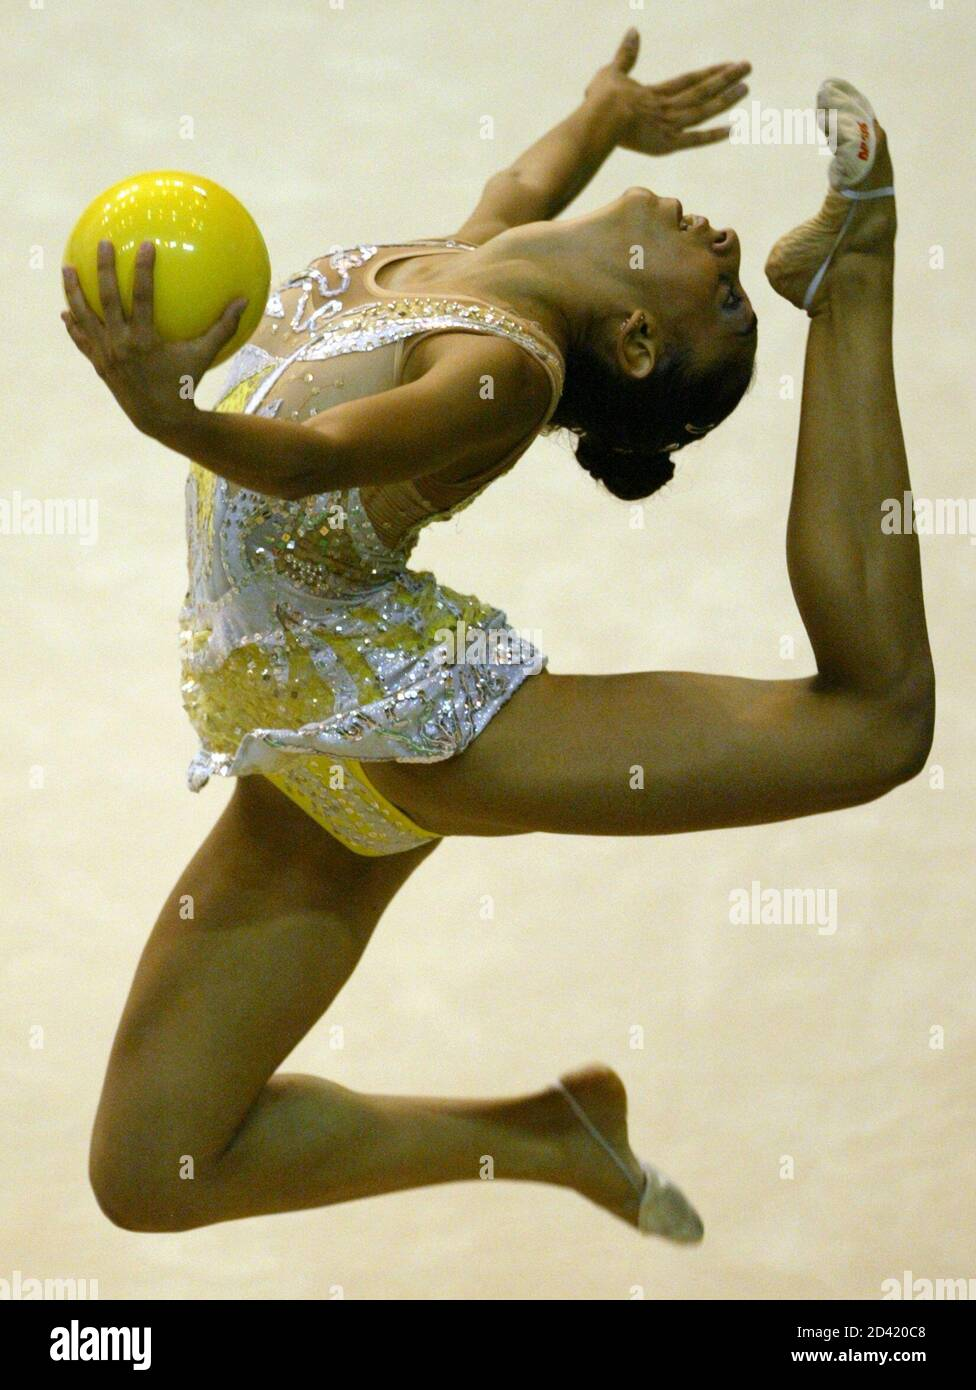 Maria Aristotelous from Cyprus performs during the individual all-around rhythmic gymnastics competition at the 22nd Summer Universiade Games in Kyeongju August 23, 2003. REUTERS/Kim Kyung-Hoon  KKH/RCS Stock Photo